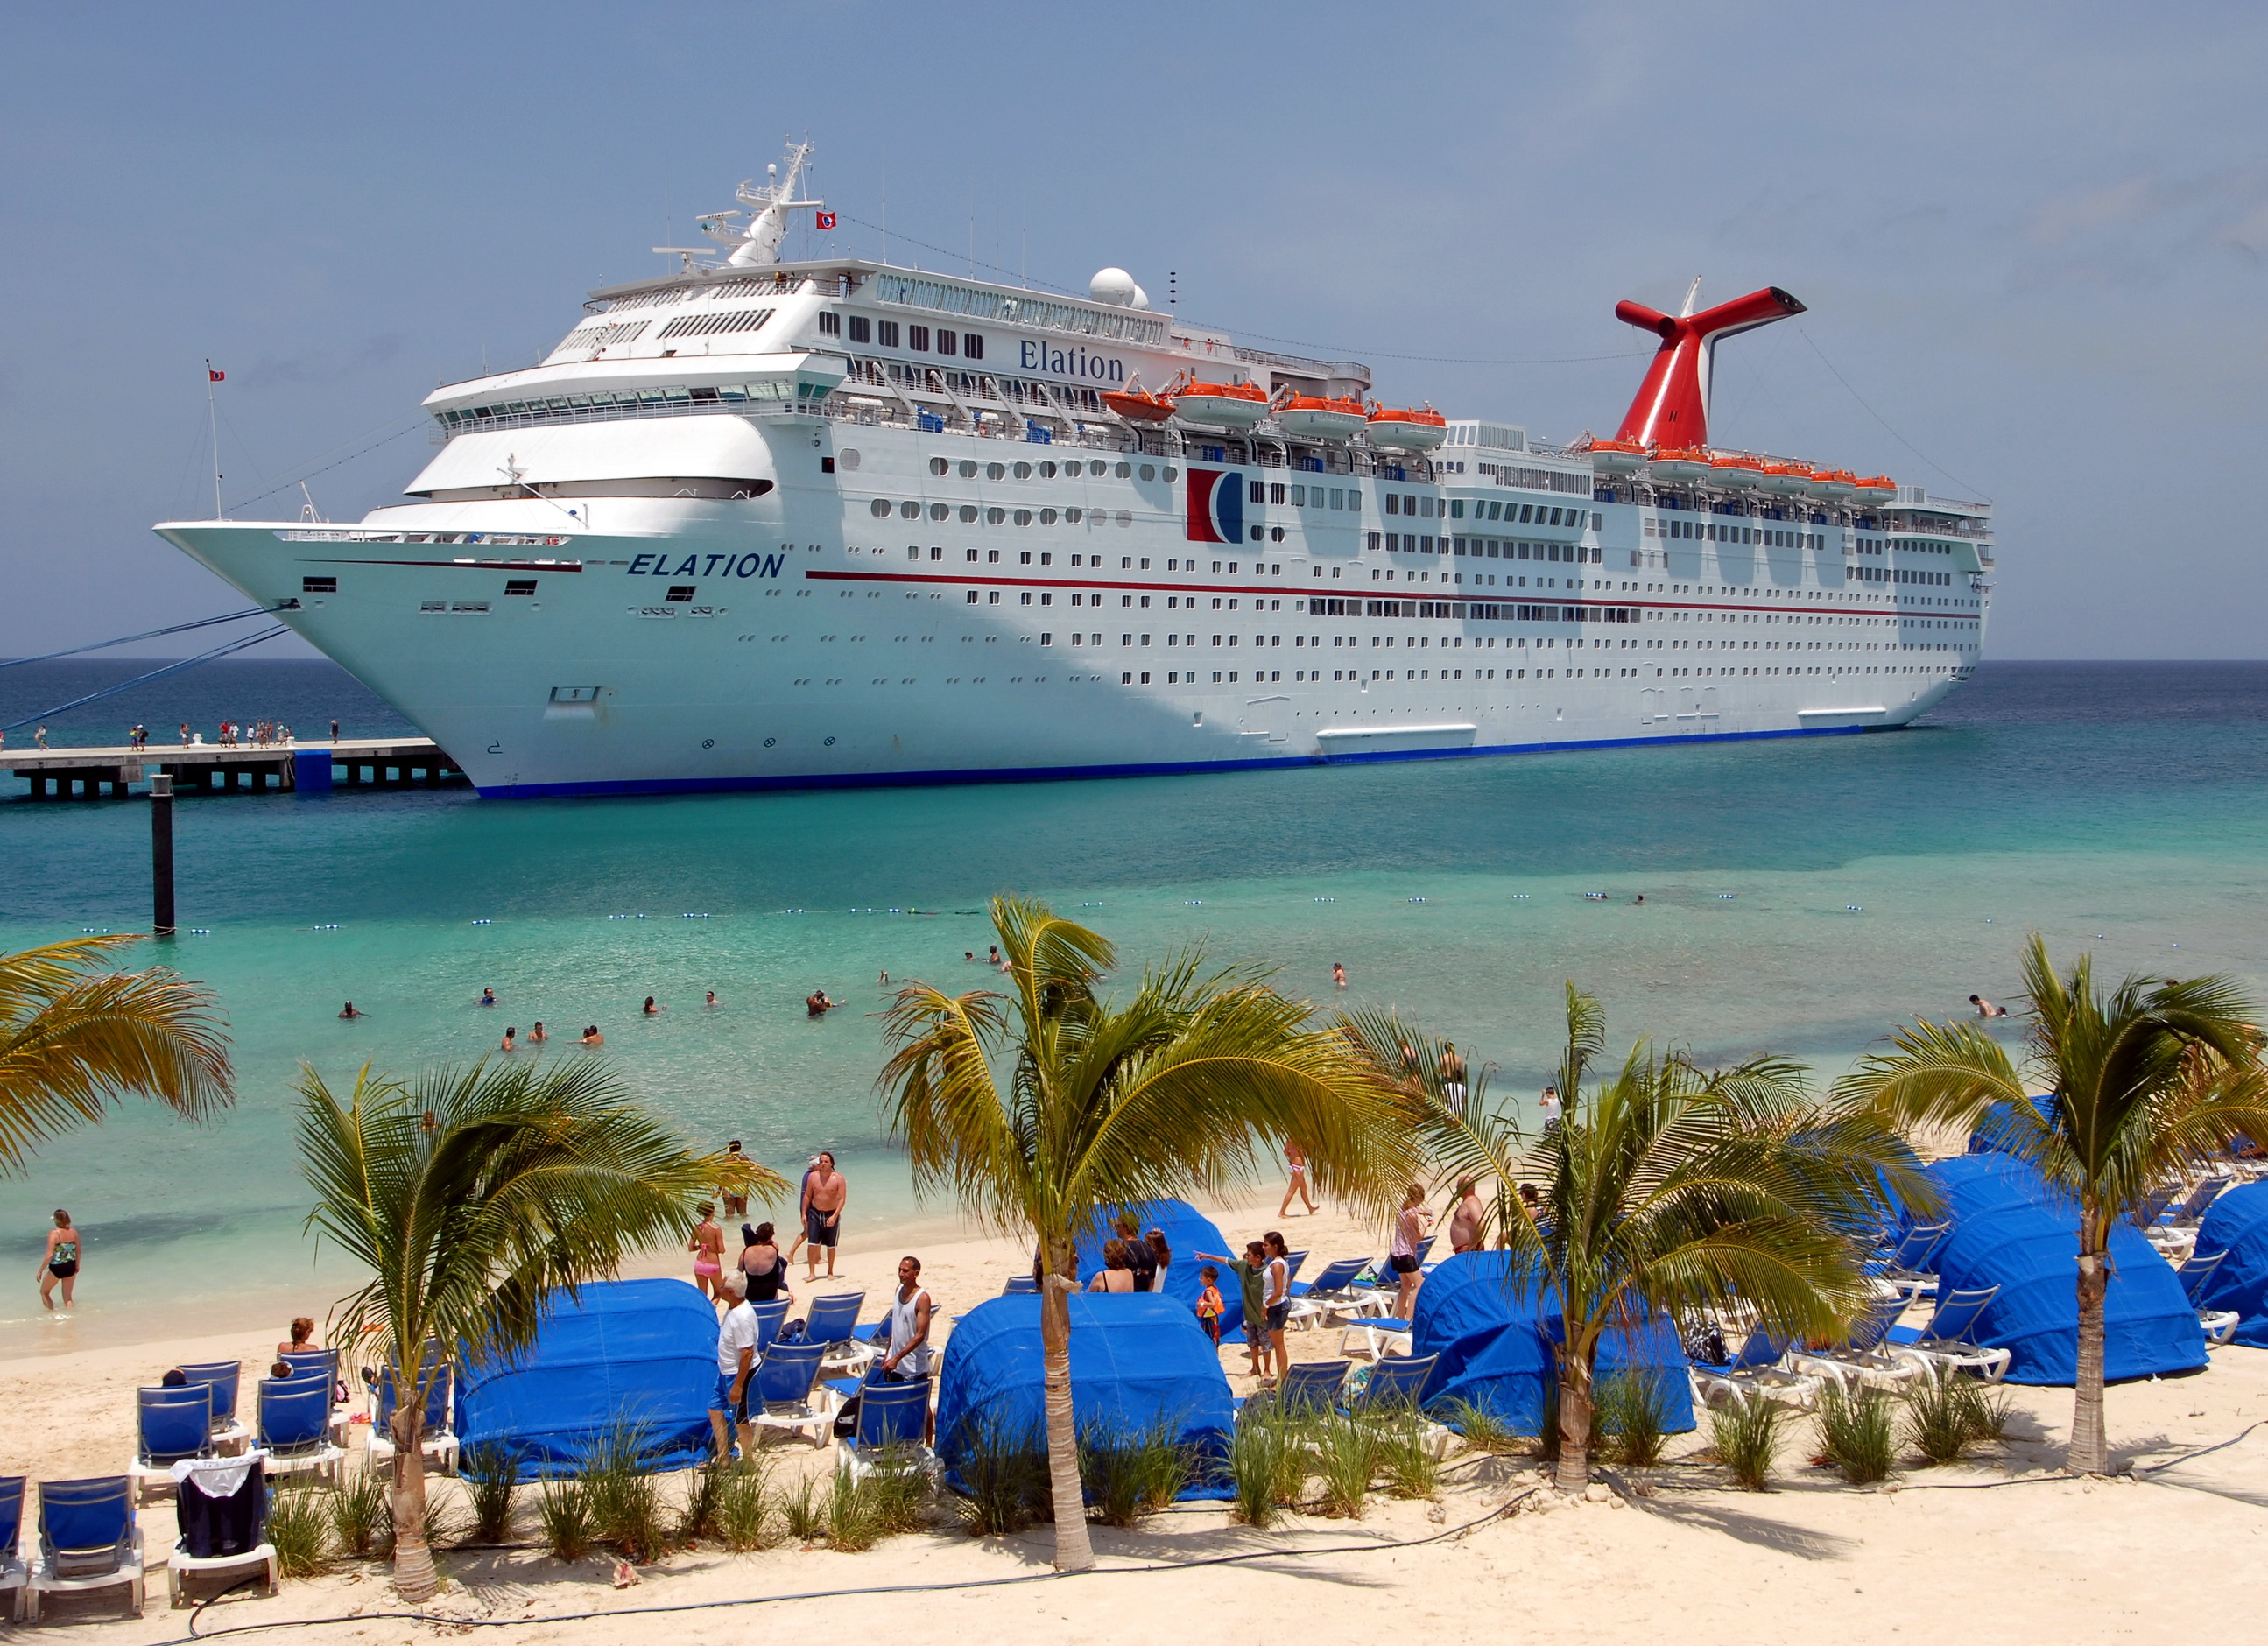 Carnival Elation Computer Wallpapers Desktop Backgrounds 2590x1880 2590x1880